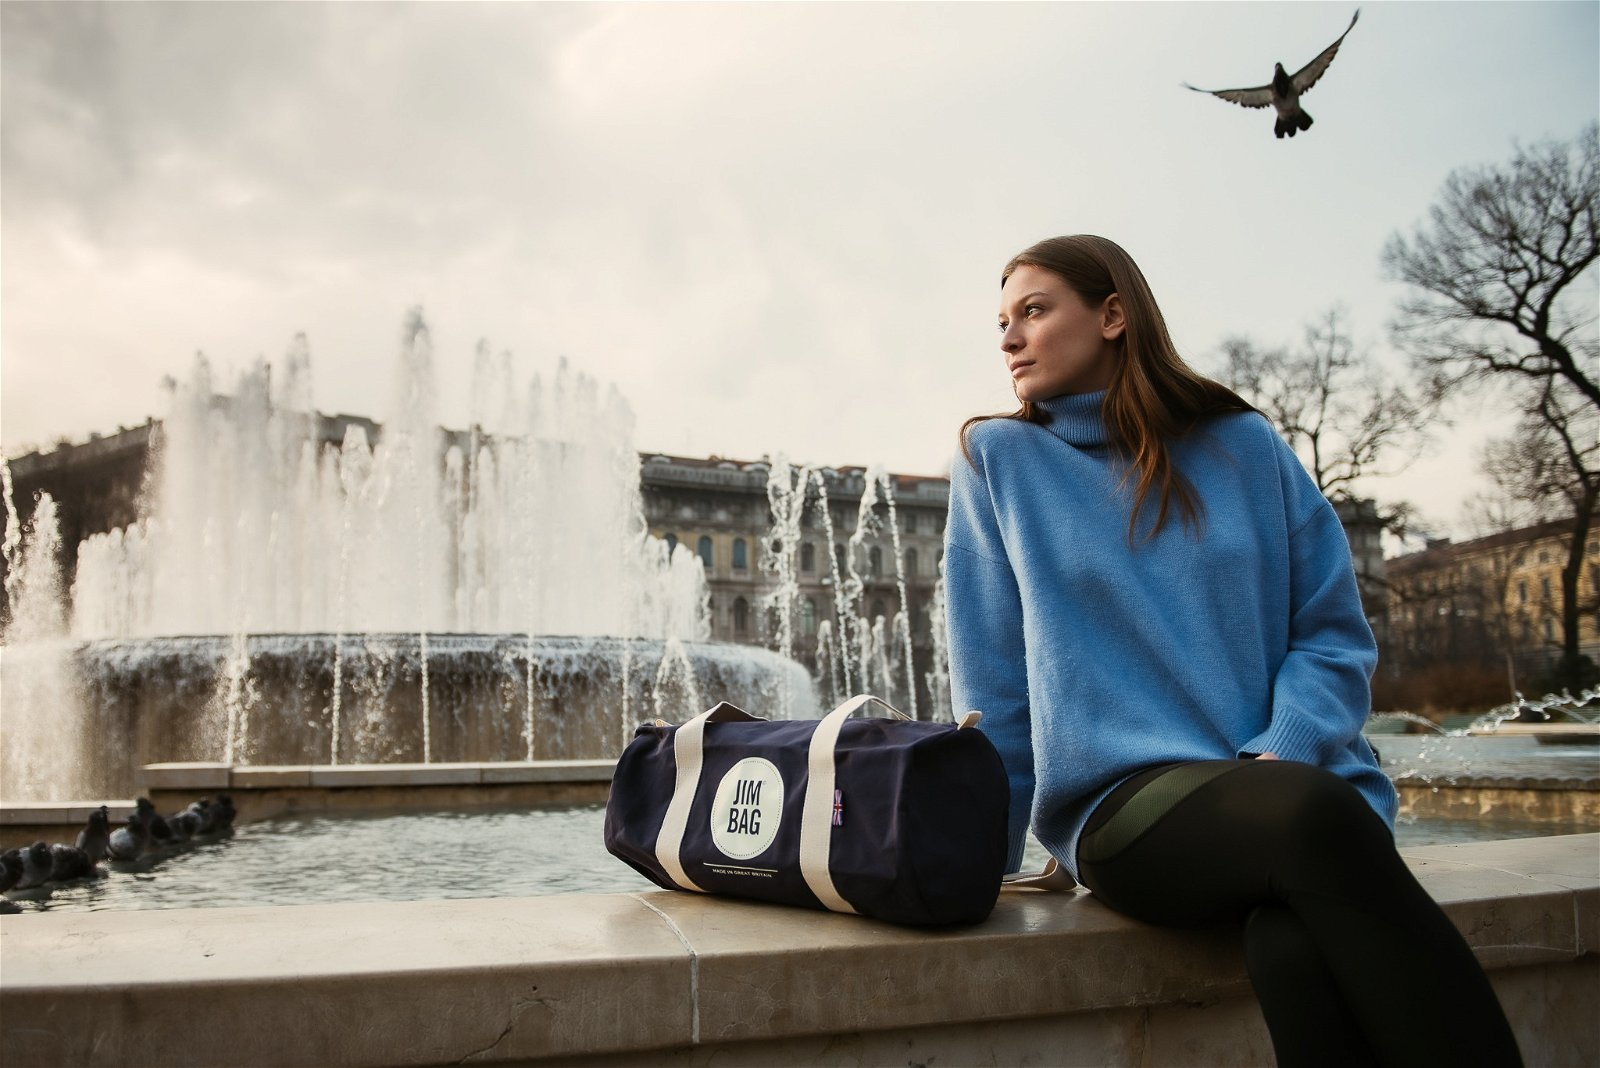 Girl in Milan fountain with jimbag shot by cherrydeck photographer Consuelo Canducci